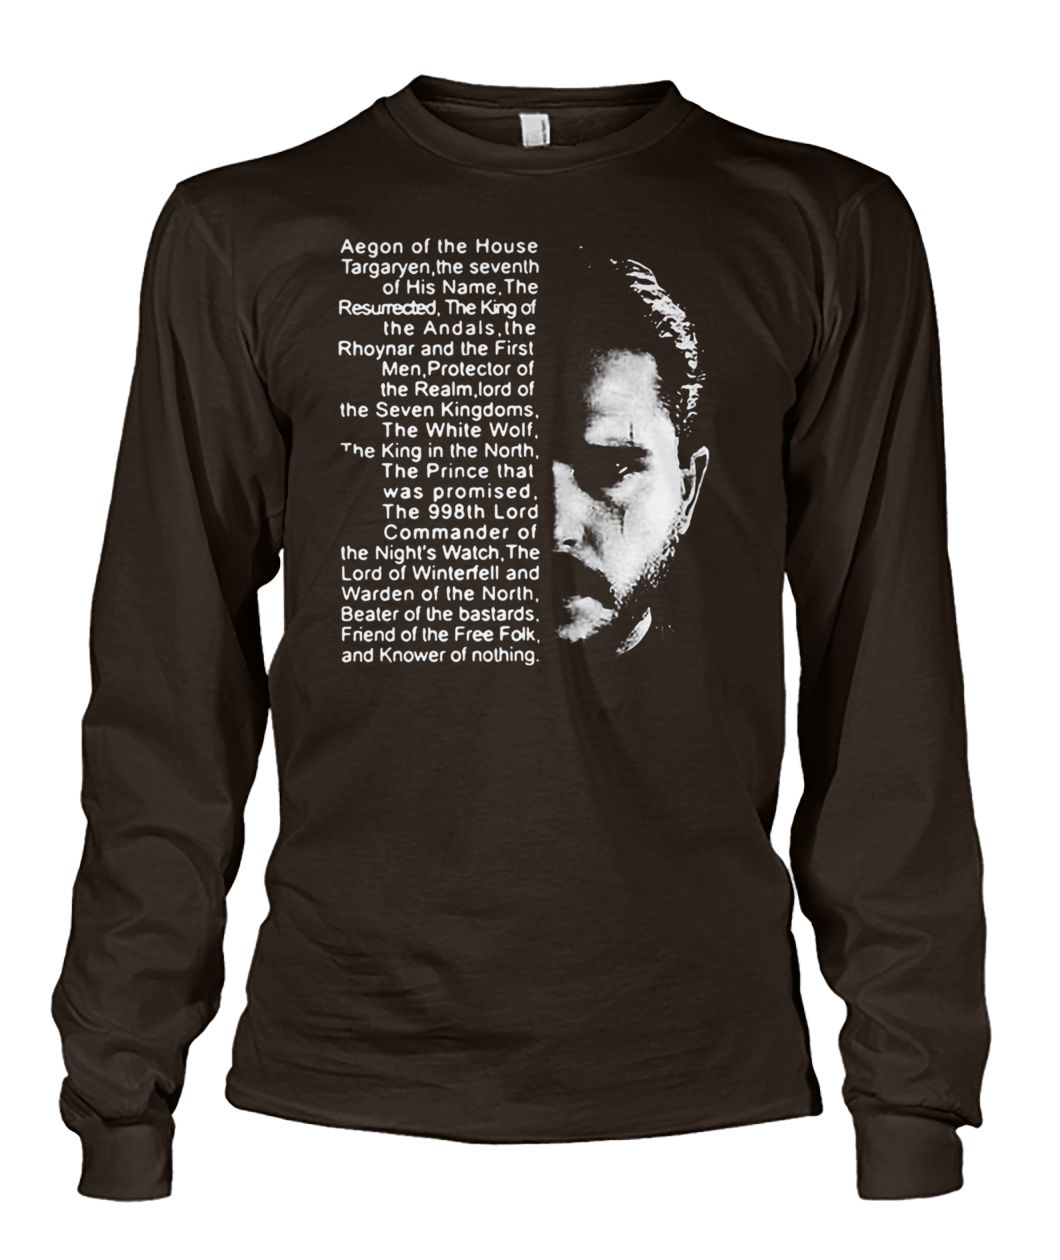 Post malone and game of thrones aegon of the house unisex long sleeve